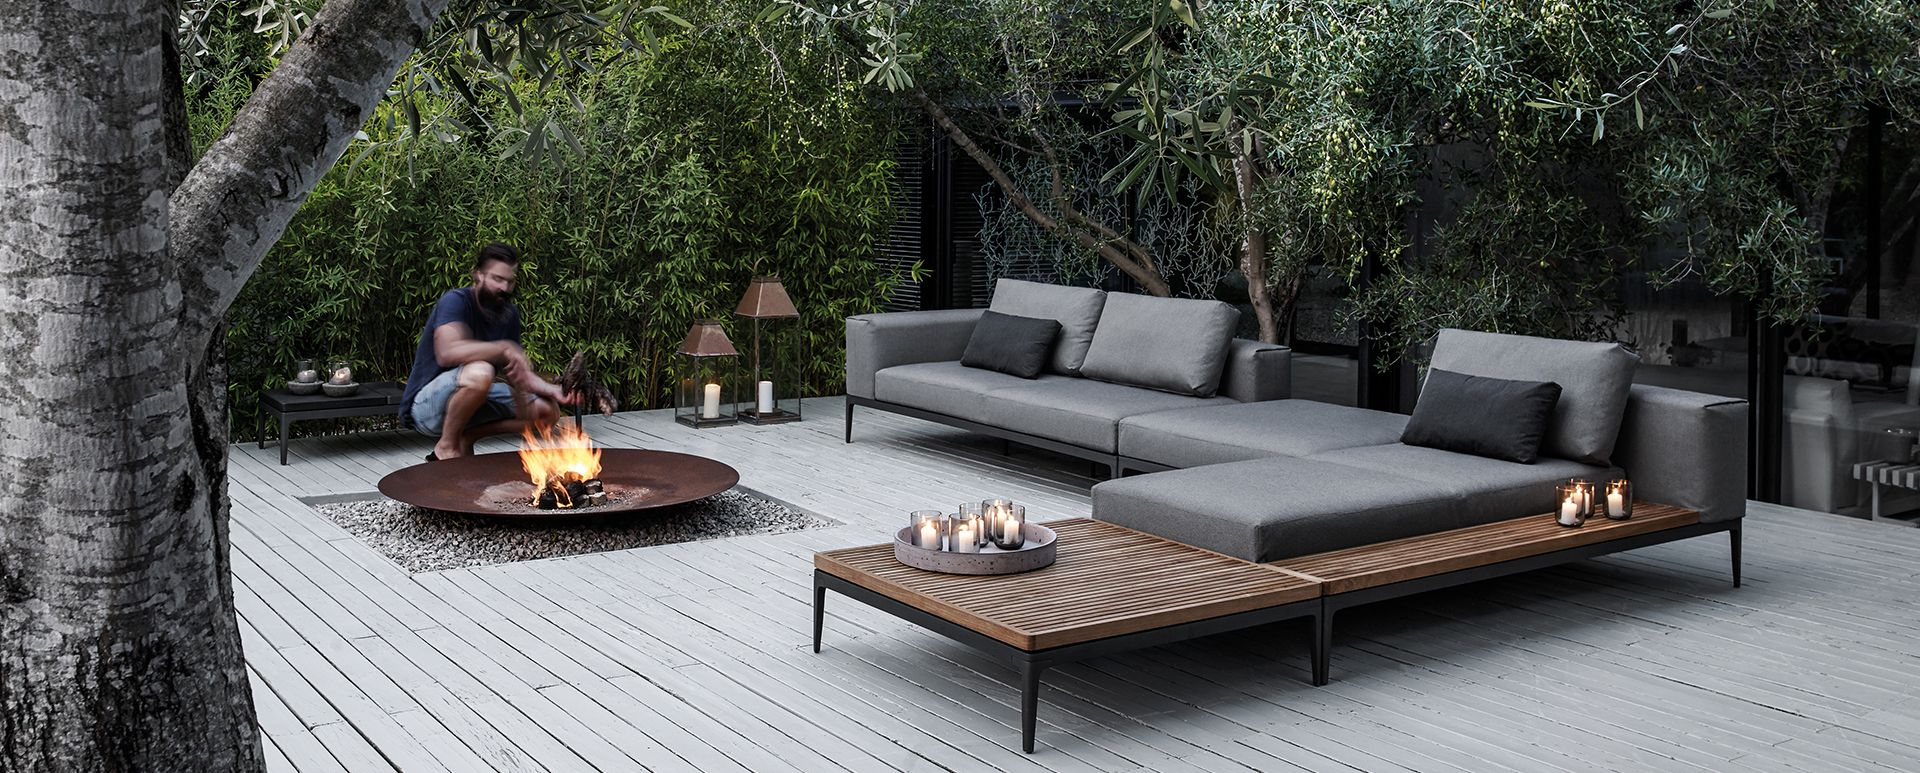 Fire Pit And Sofas Modern Outdoor Furniture Luxury Outdoor Furniture Backyard Patio Modern outdoor fire pit set